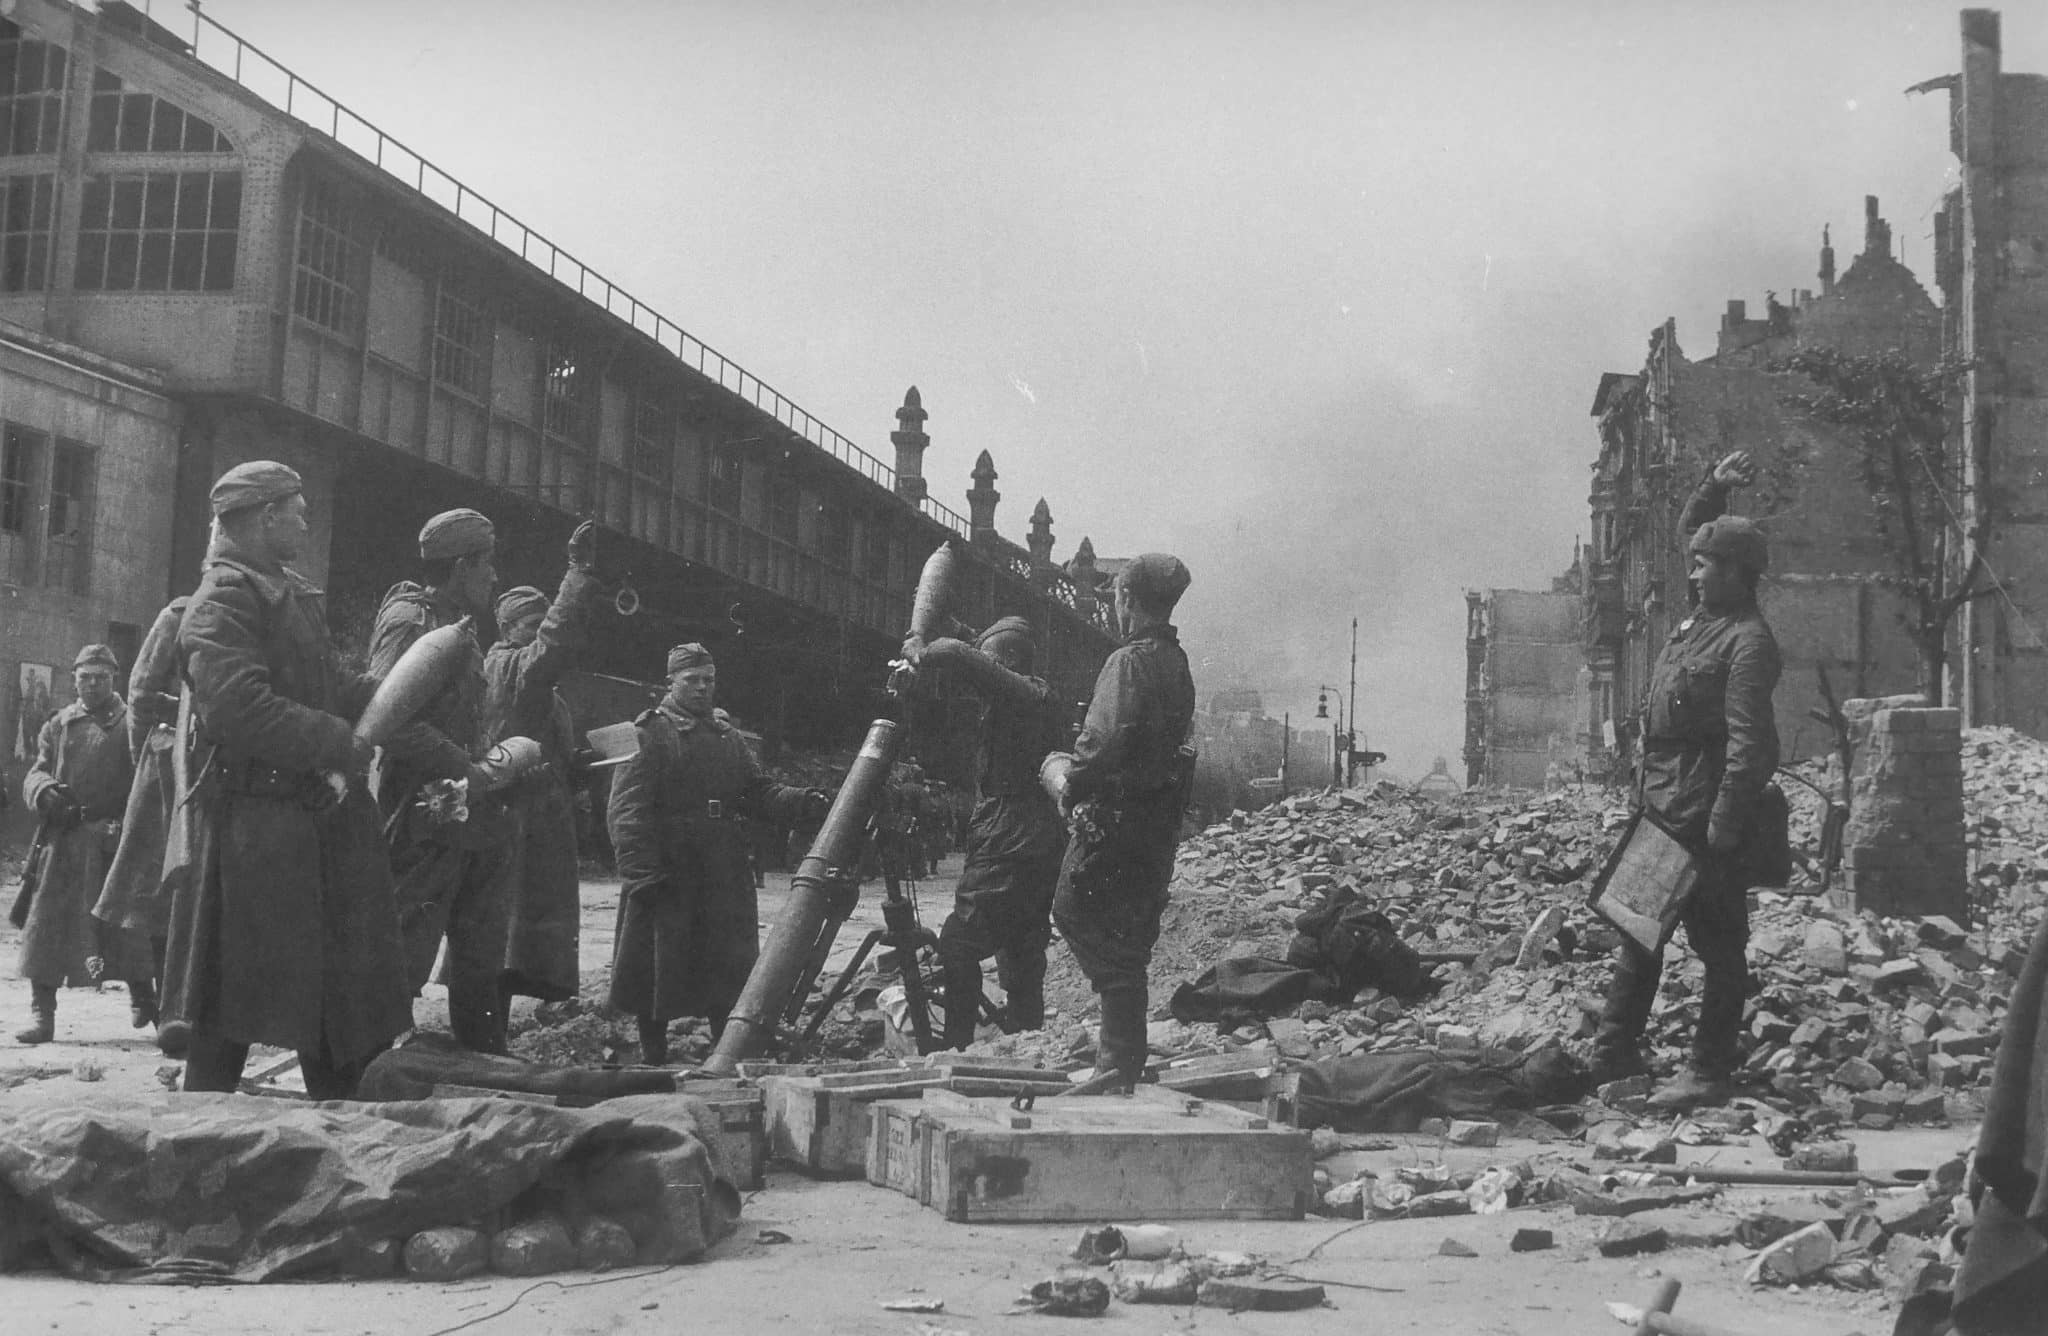 The calculation of the Soviet mortar PM-43 fires at the metro station Bulowstrasse in Berlin